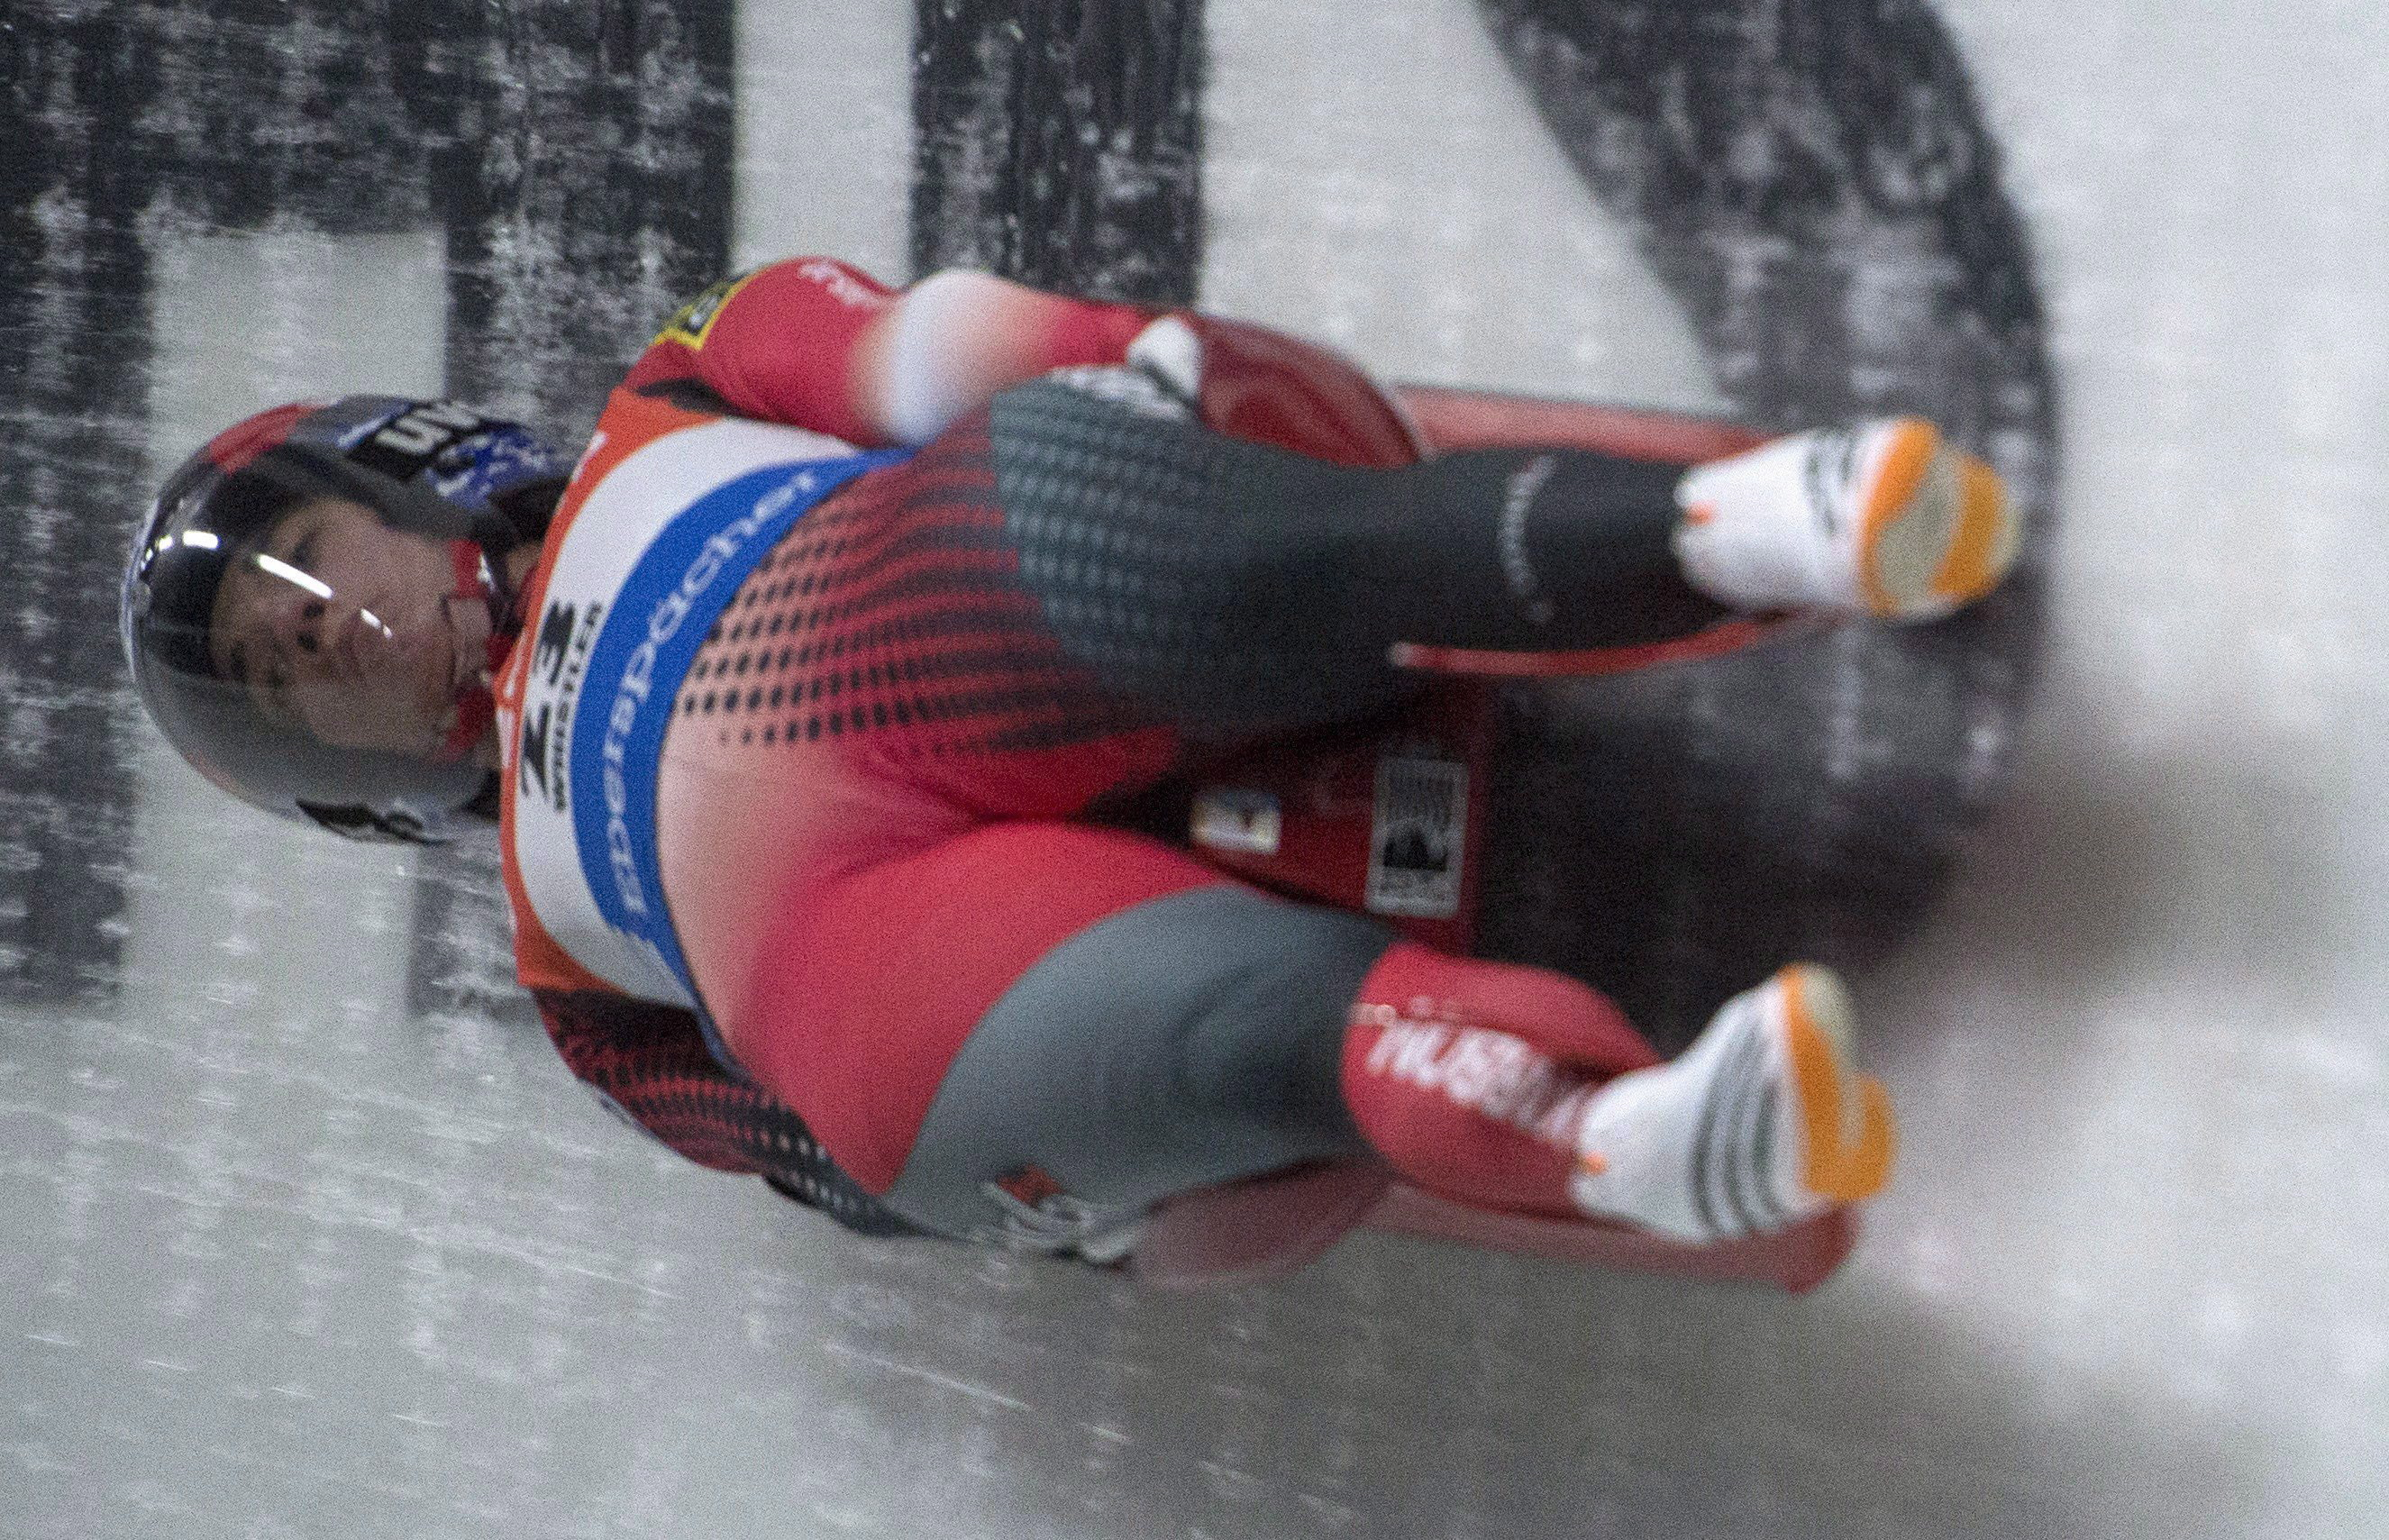 Kimberley McRae of Canada slides during the women's Luge World Cup in Whistler, B.C. Saturday, Dec. 10, 2016. THE CANADIAN PRESS/Jonathan Hayward